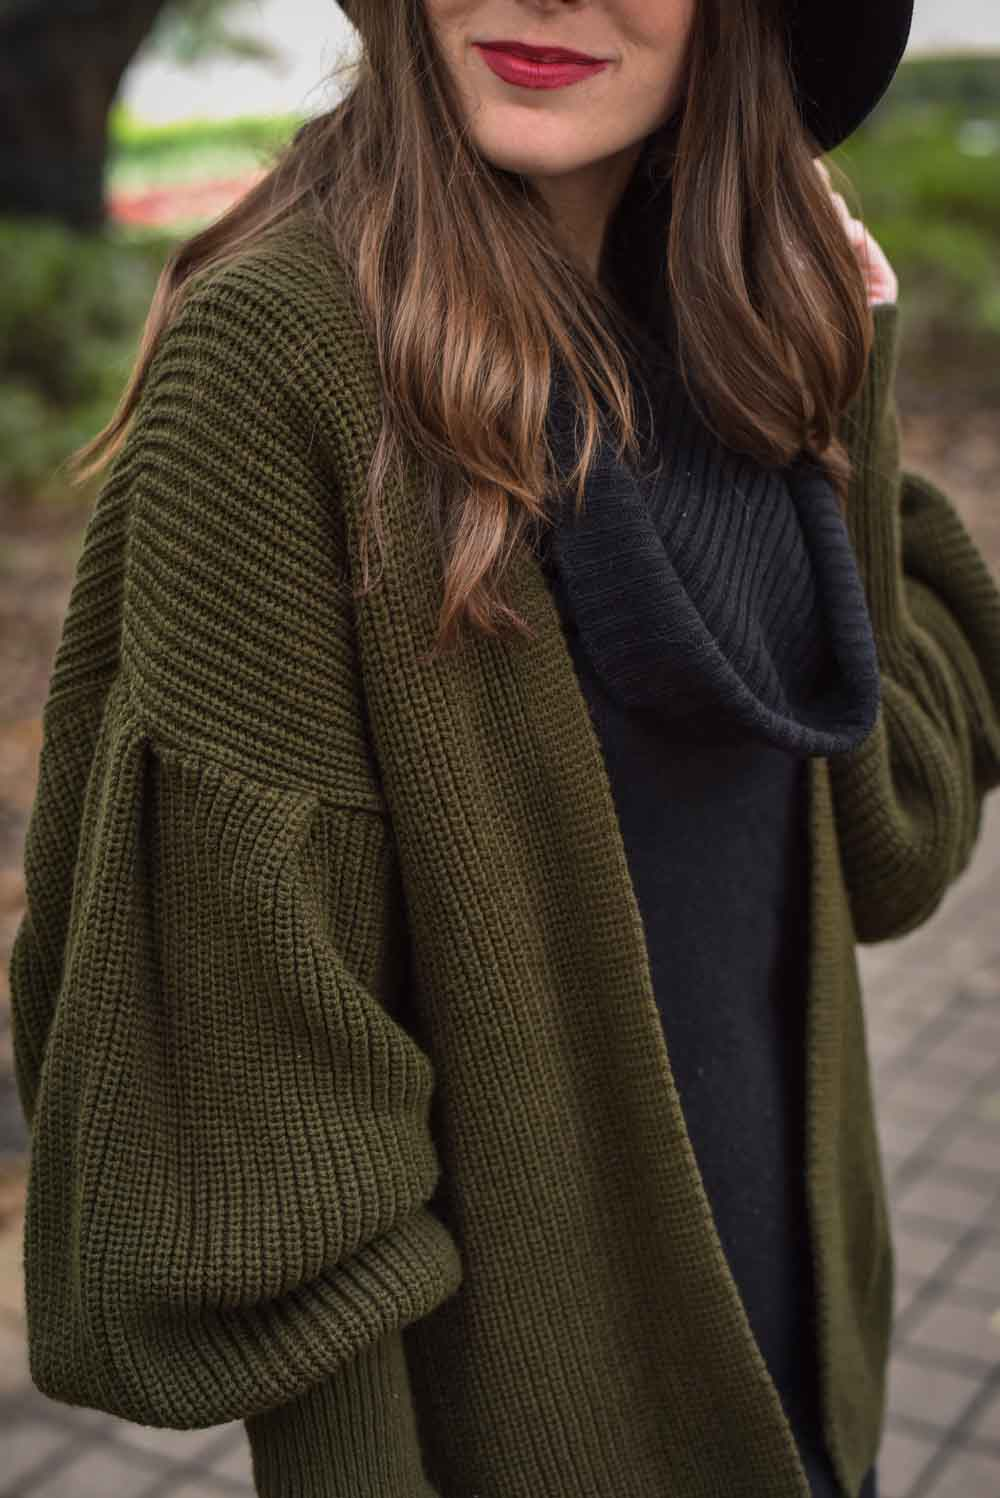 trendy winter outfit